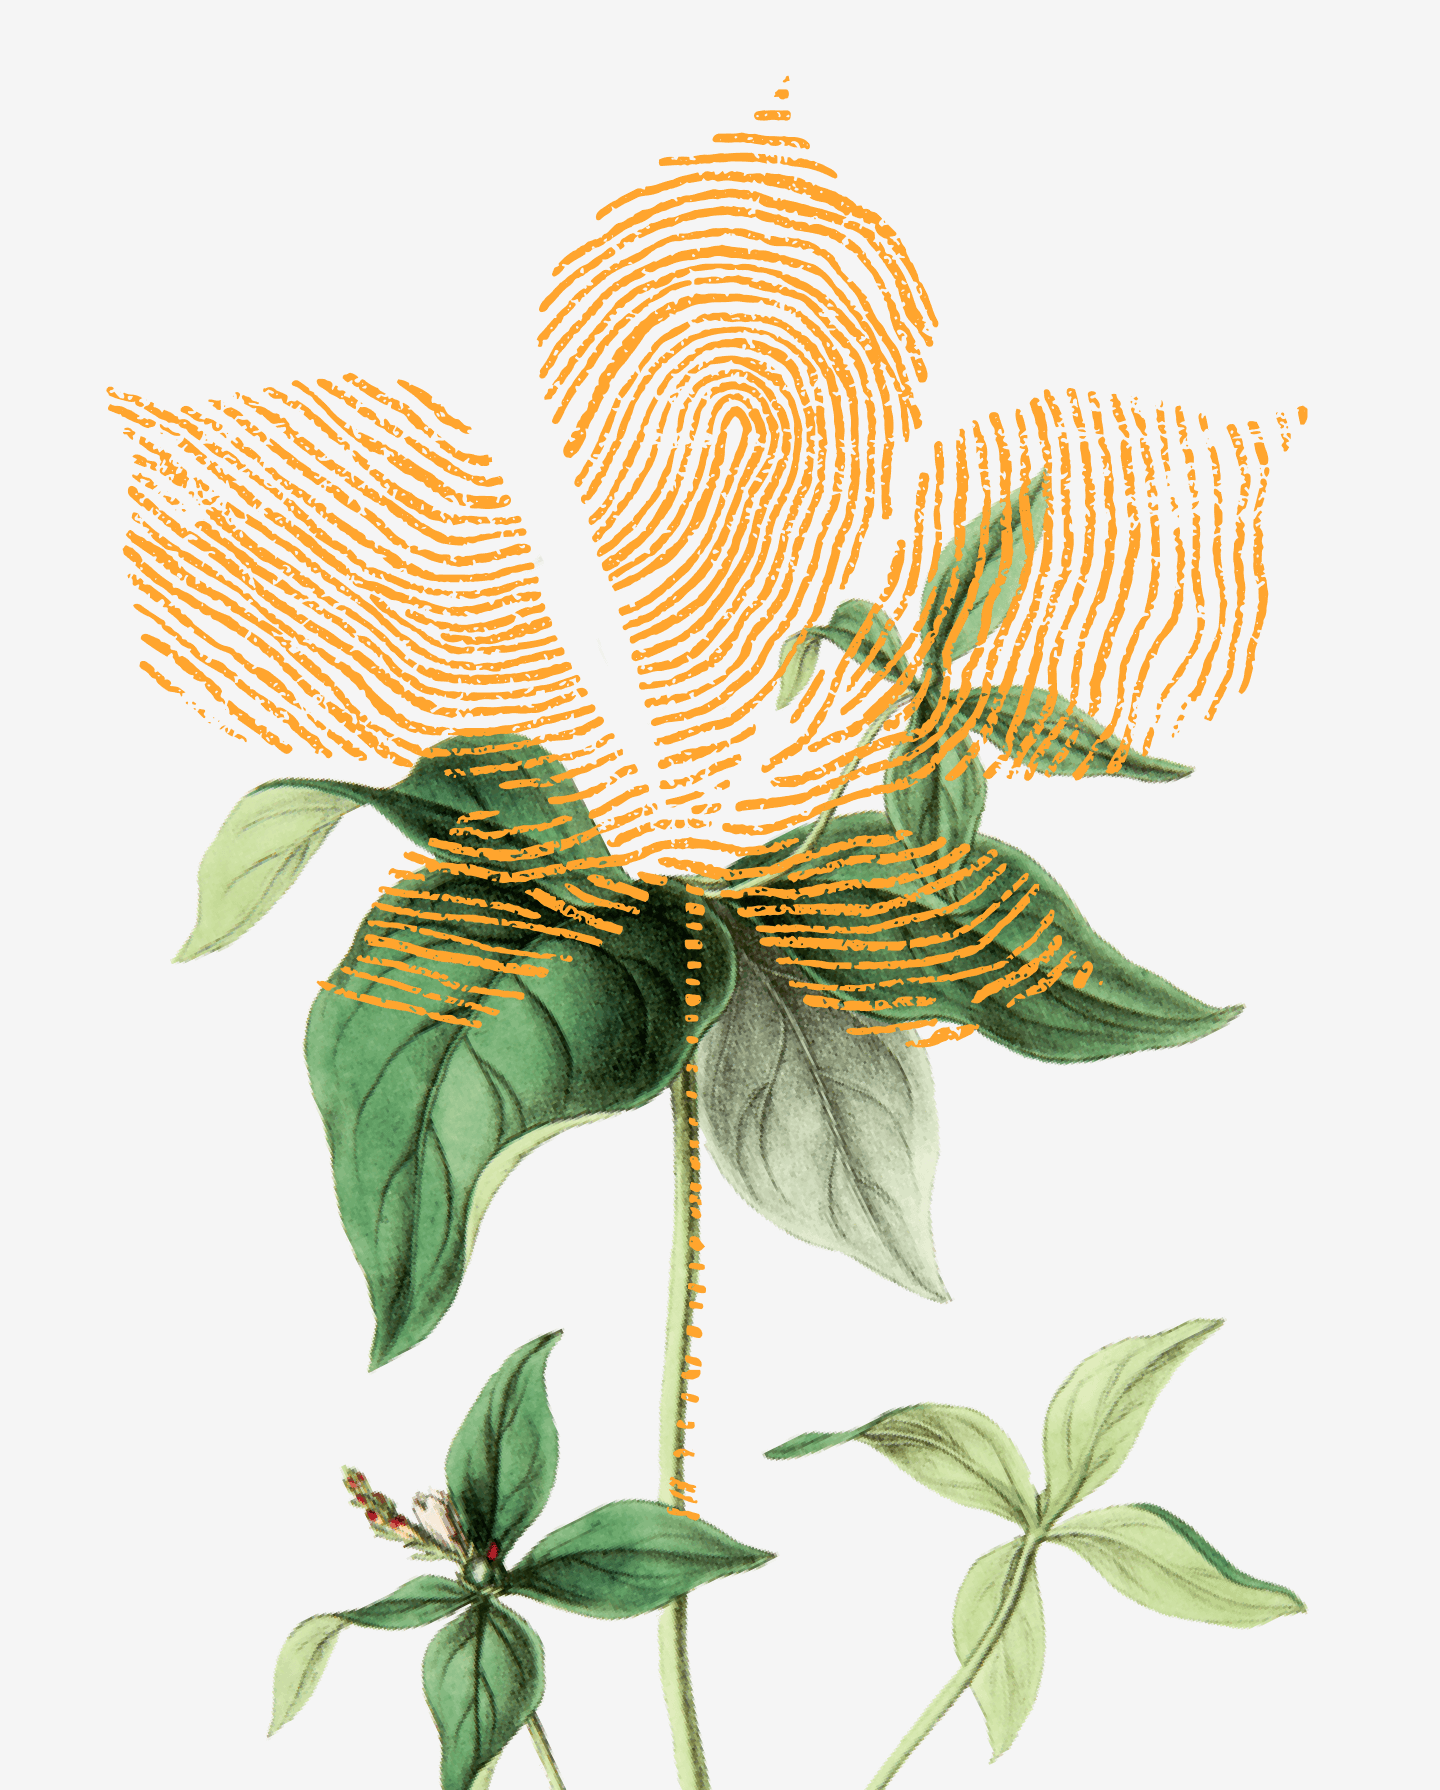 Botanical graphic in a gold color